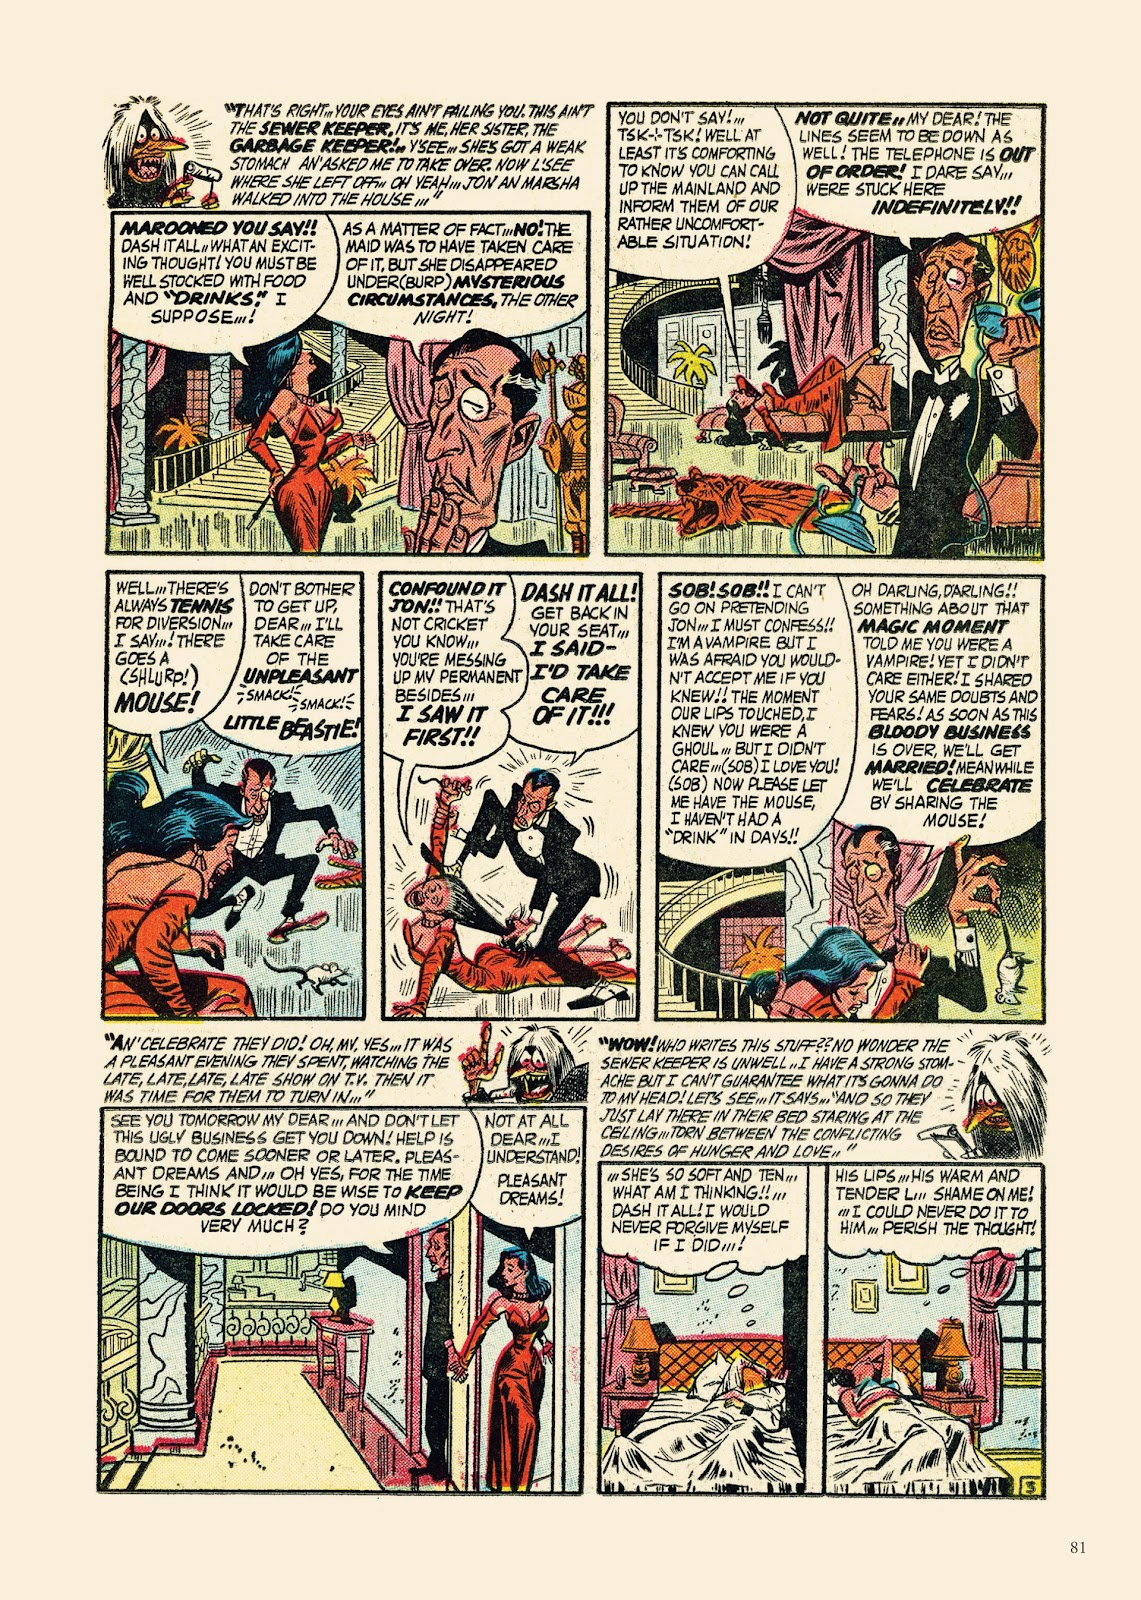 Read online Sincerest Form of Parody: The Best 1950s MAD-Inspired Satirical Comics comic -  Issue # TPB (Part 1) - 82